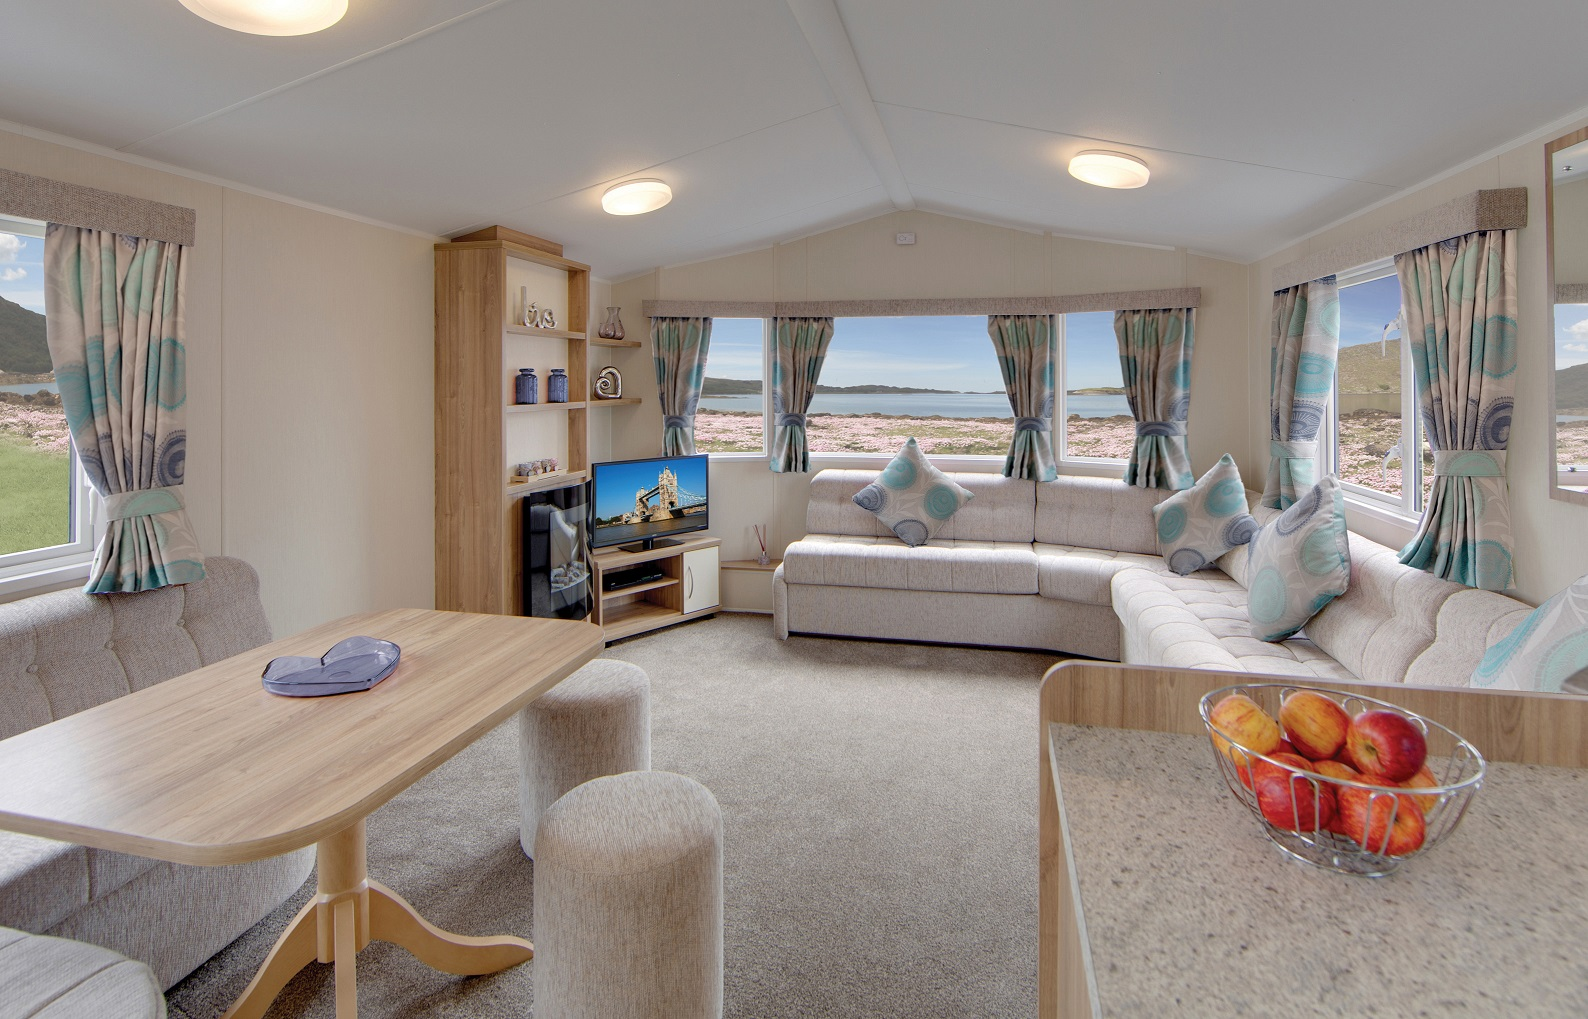 Willerby Rio Gold: New Static Caravans and Holiday Homes for Sale, Clifton, Morpeth Large Image 1